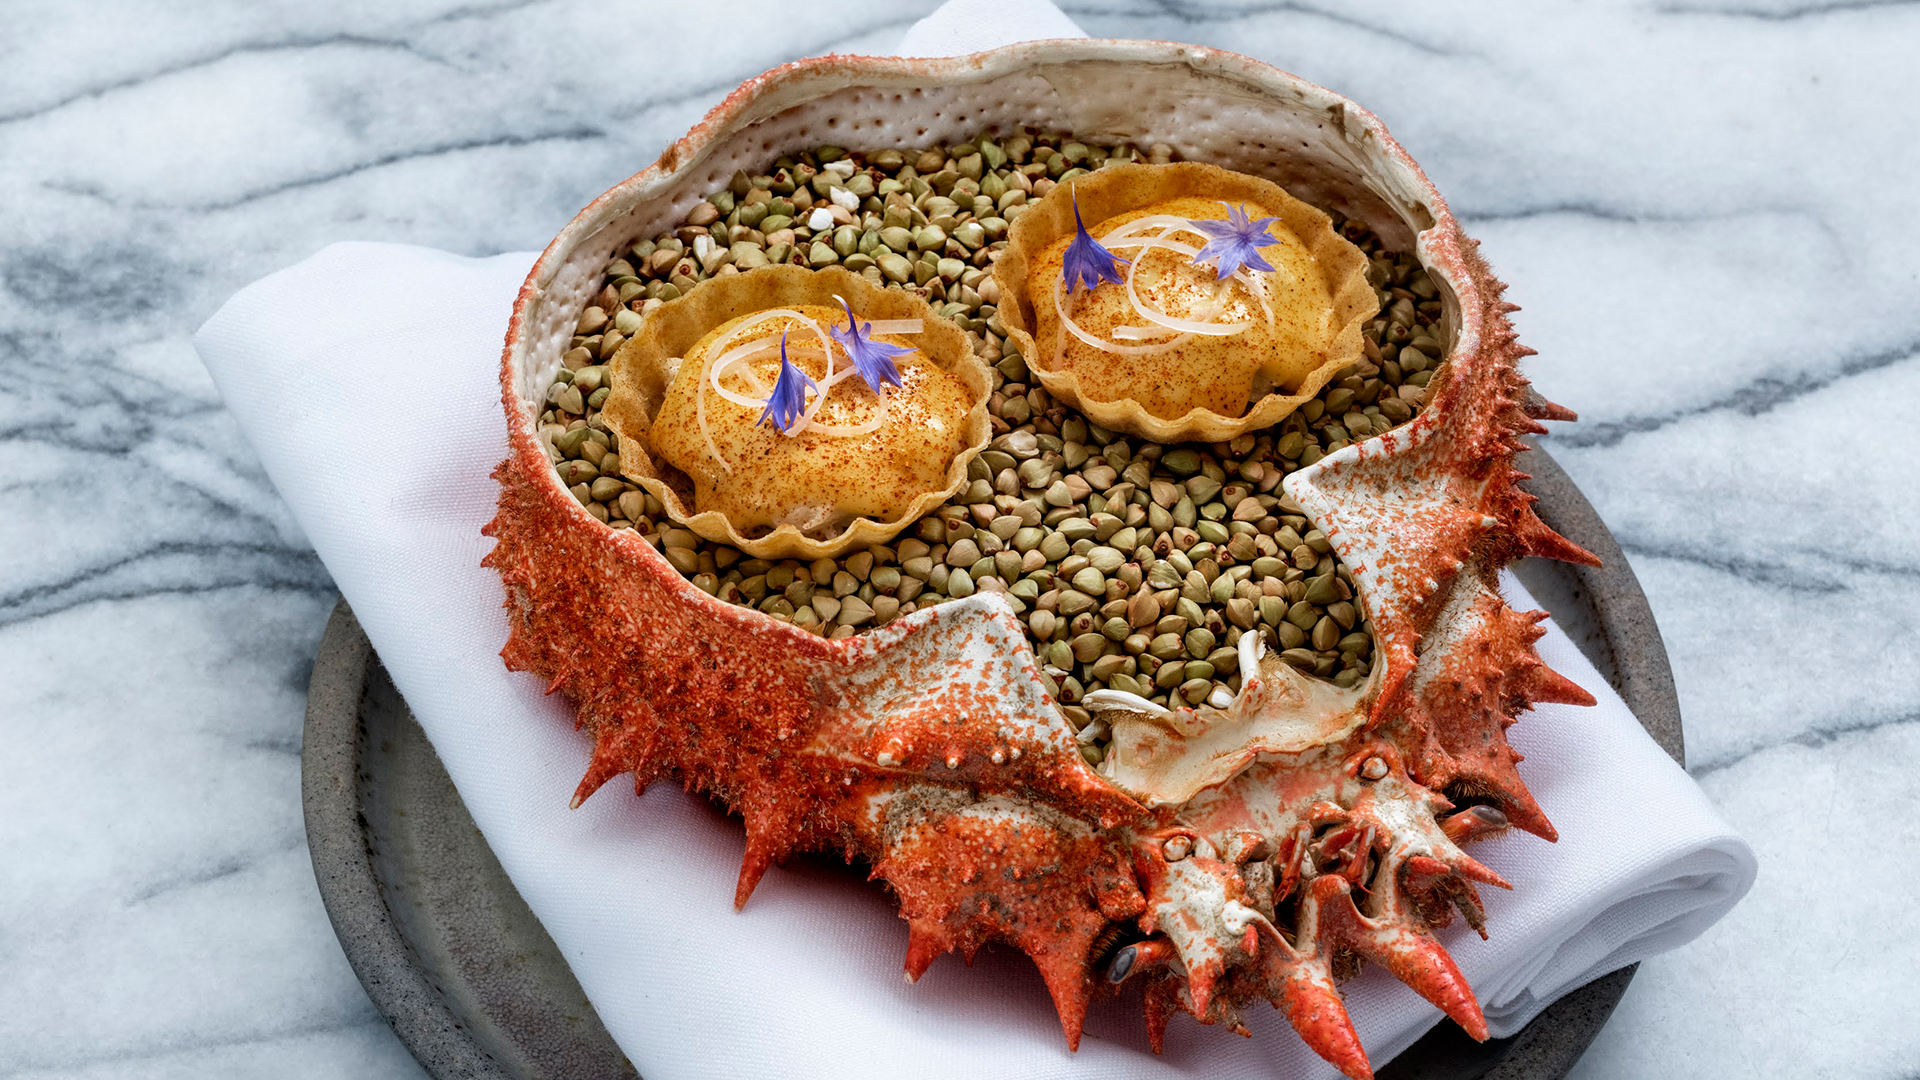 Spider crab tartlets served in a crab shell filled with sea gravel at Michelin-starred London restaurant The Clove Club